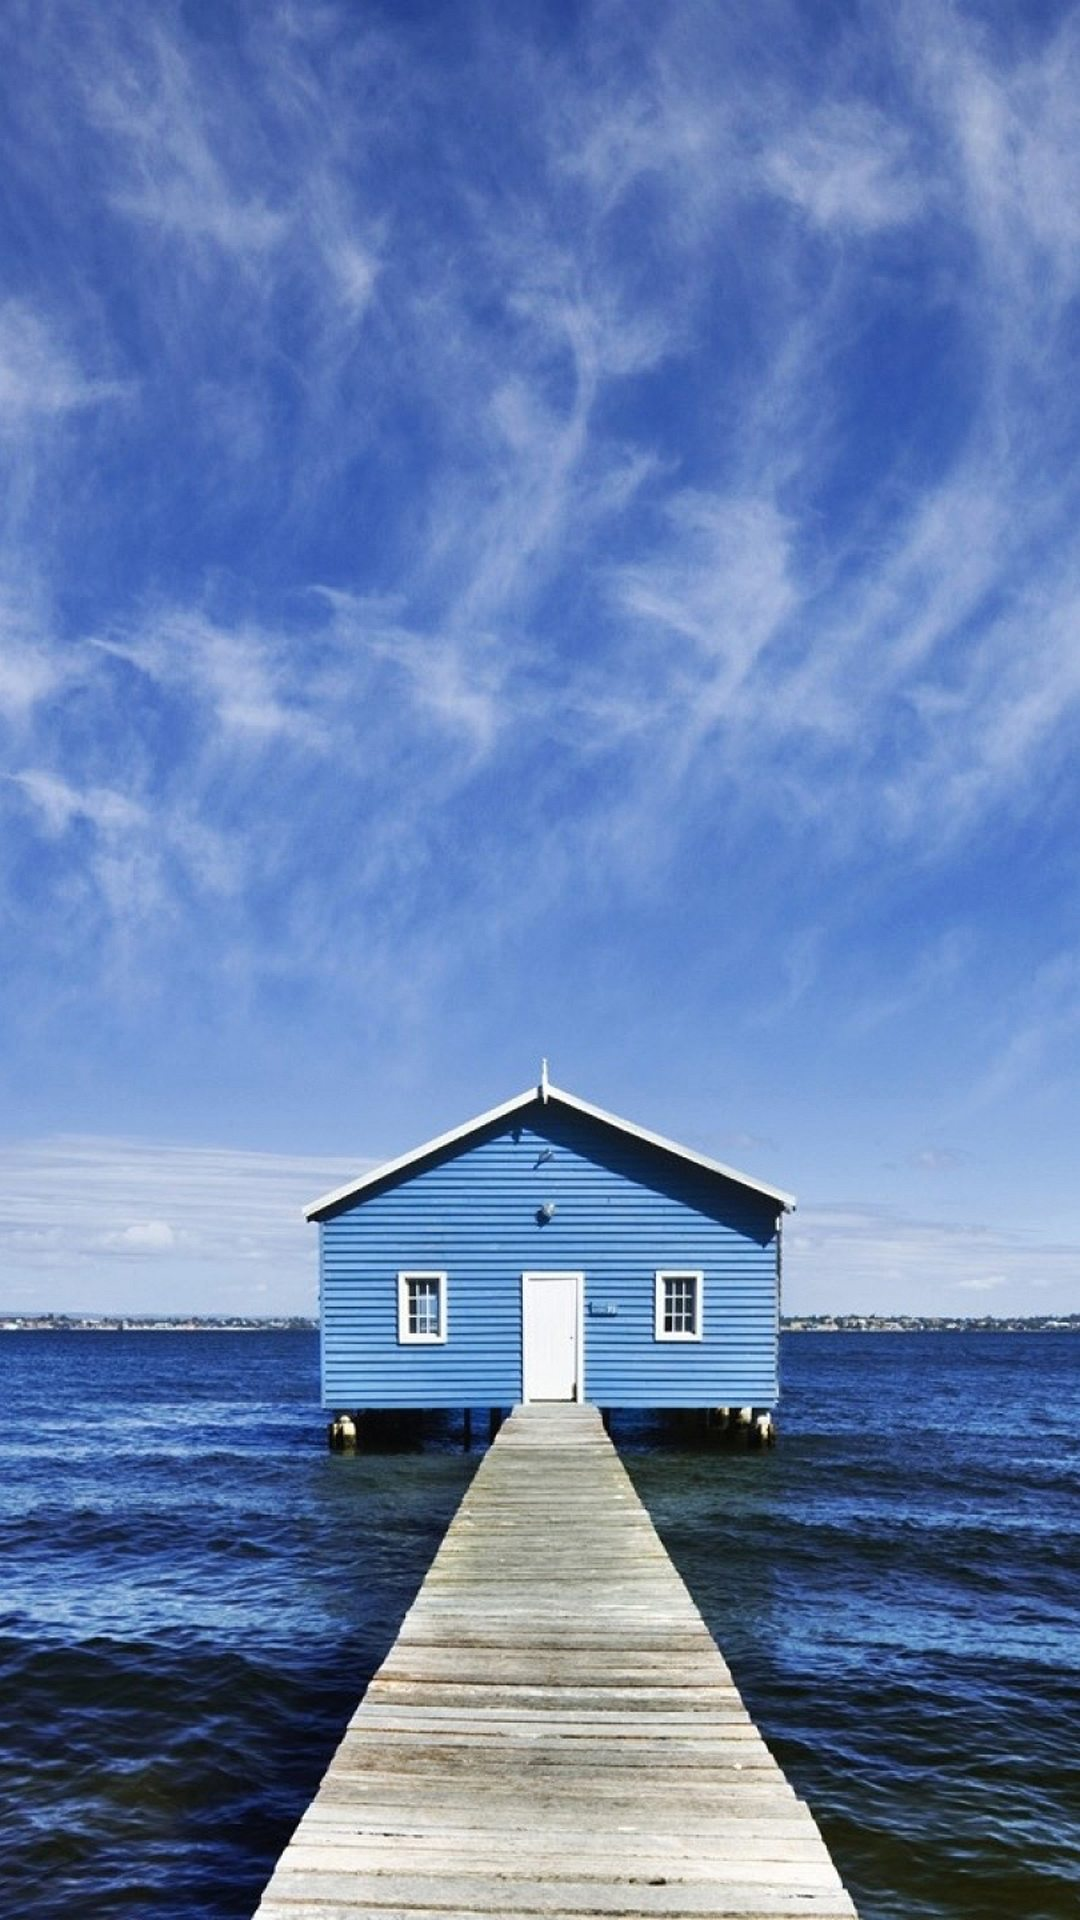 Blue house on sea